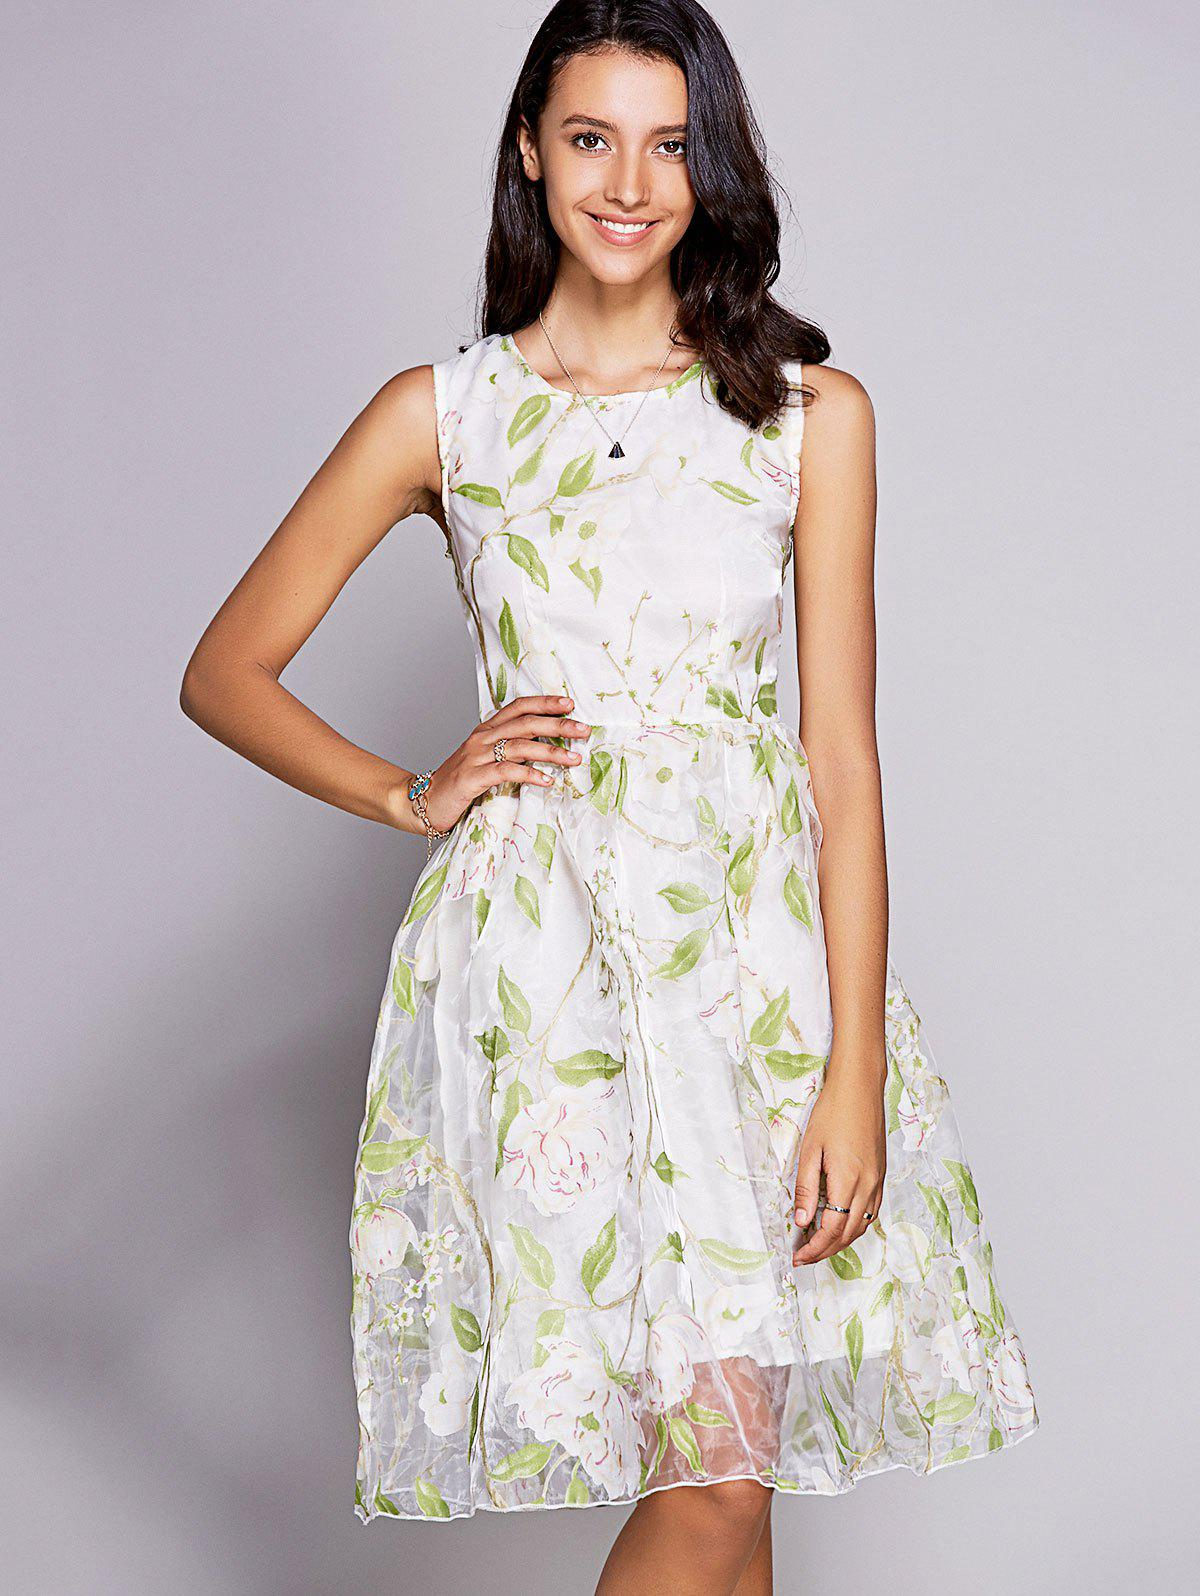 Elegant Jewel Neck Sleeveless Floral Print Organza Dress For Women